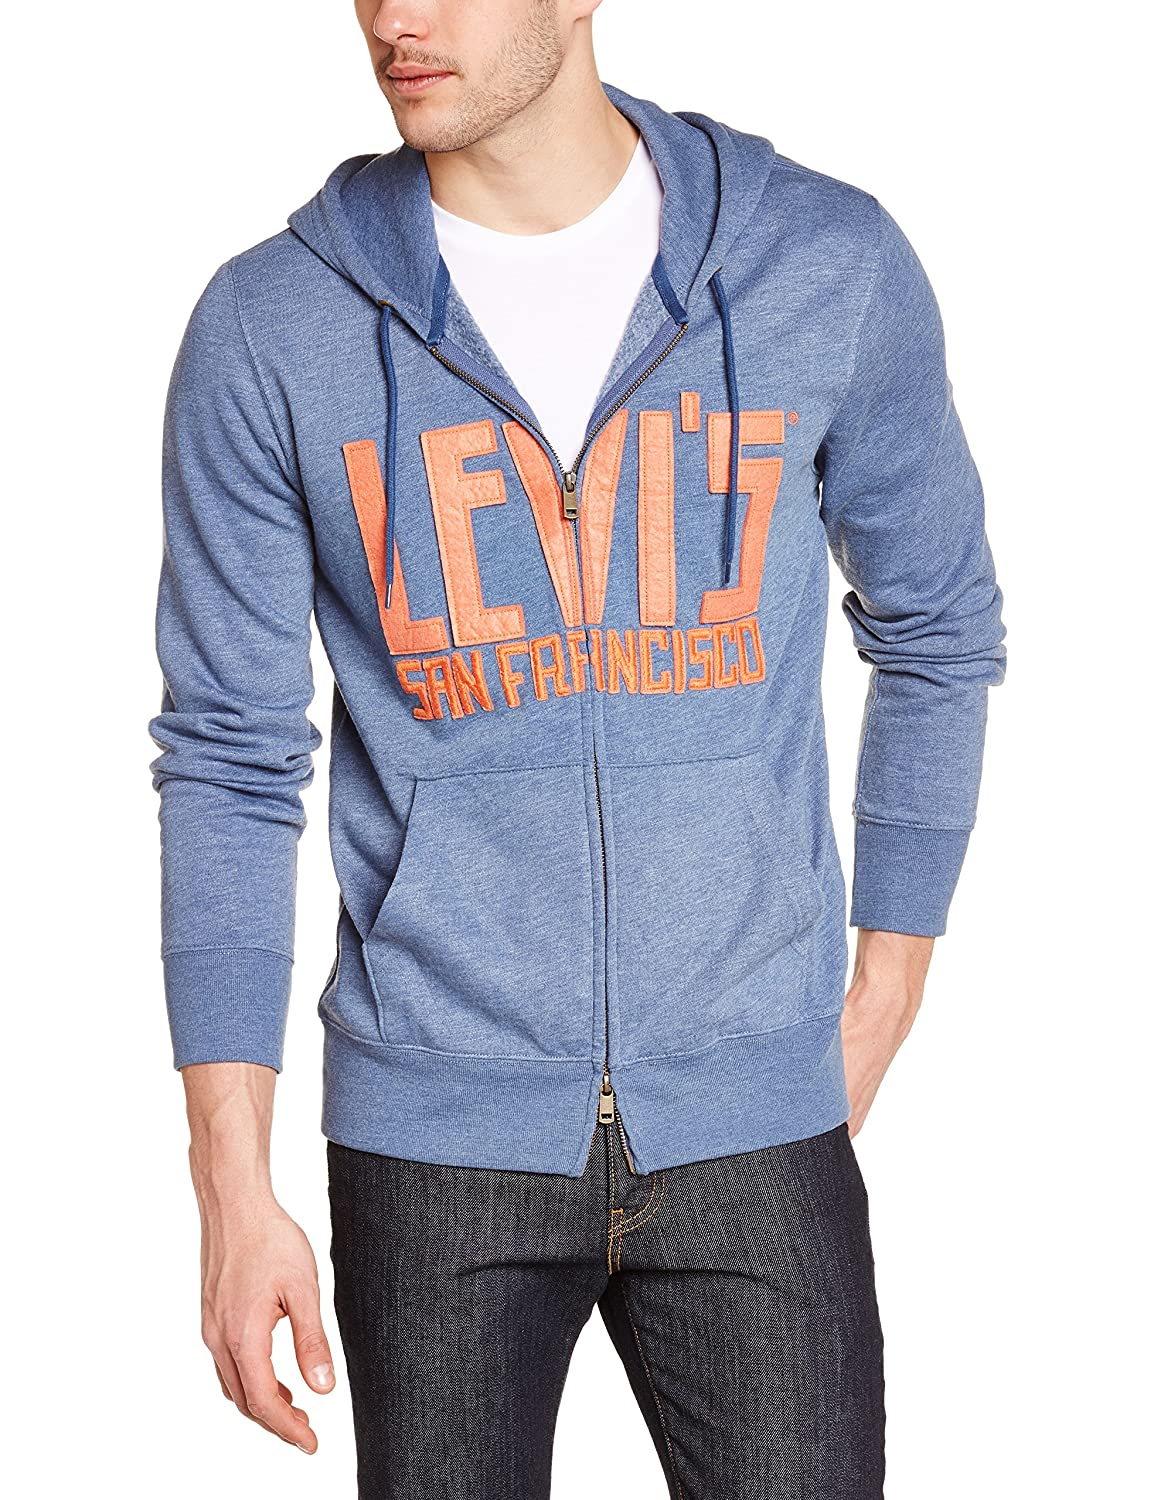 Levis Graphic Zip Up - Sudadera para Hombre, Color Blau - Bleu (c14094 h1 15 fnd SS 1.1 Graphic Ocean Blue), Talla S: Amazon.es: Ropa y accesorios